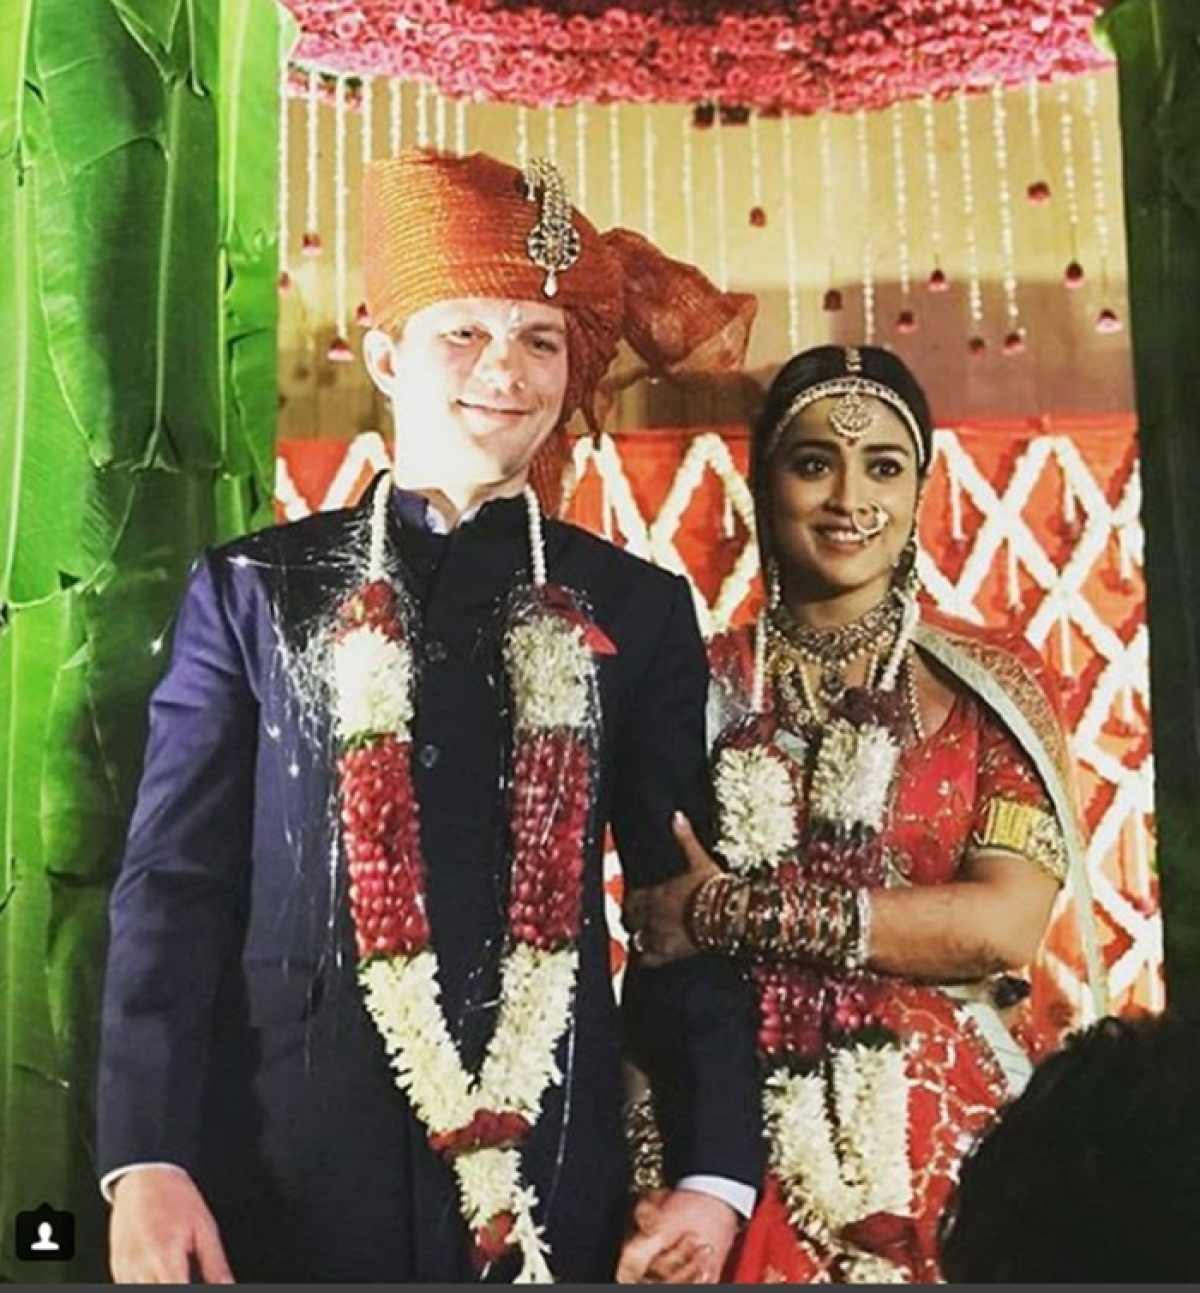 Shriya Saran's secret wedding pictures and videos leaked online; check out here